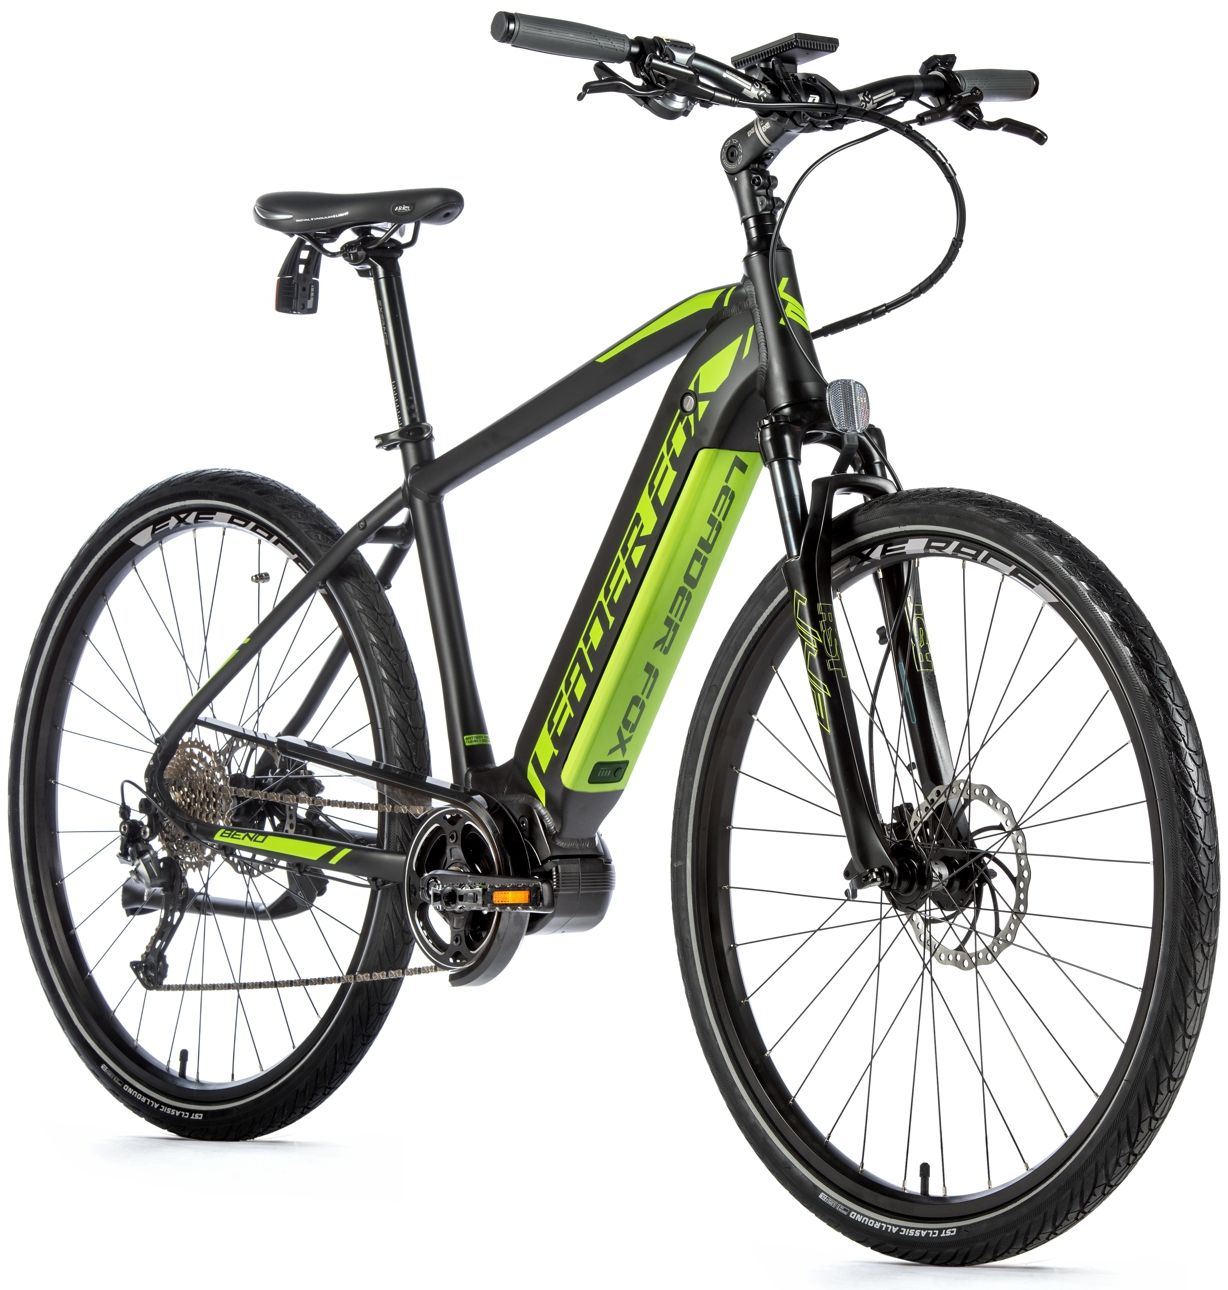 Bicicleta electrica City Leader Fox Bend Gent, 2020